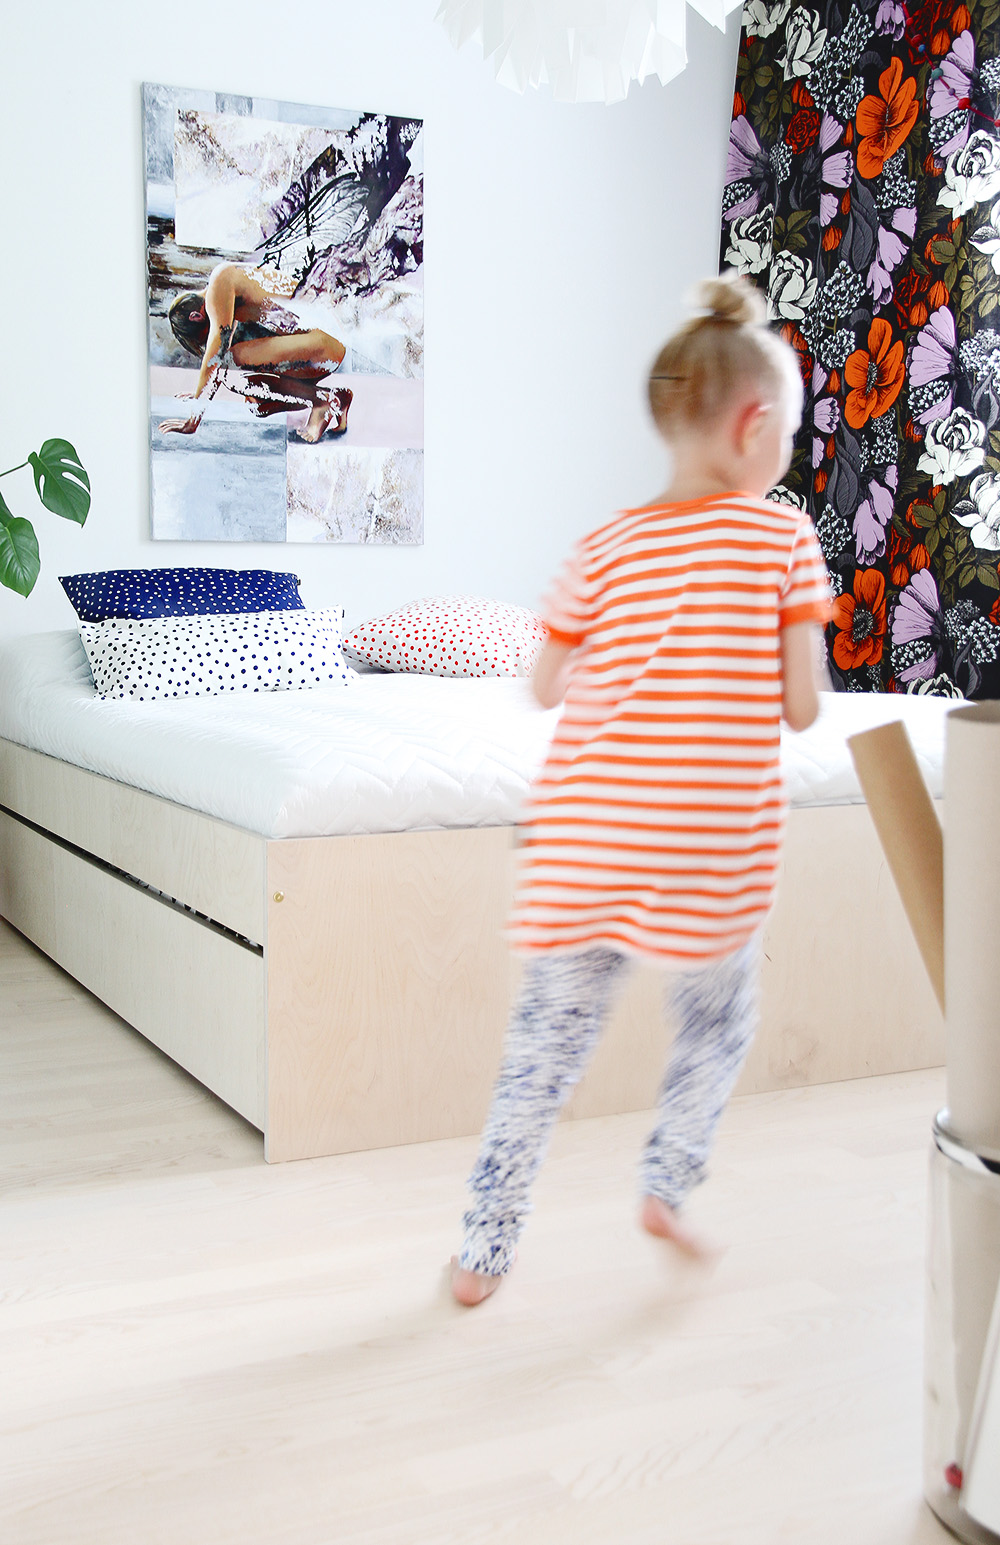 kuvahairikko hunajaista home bedroom design interior marimekko finnish decoration